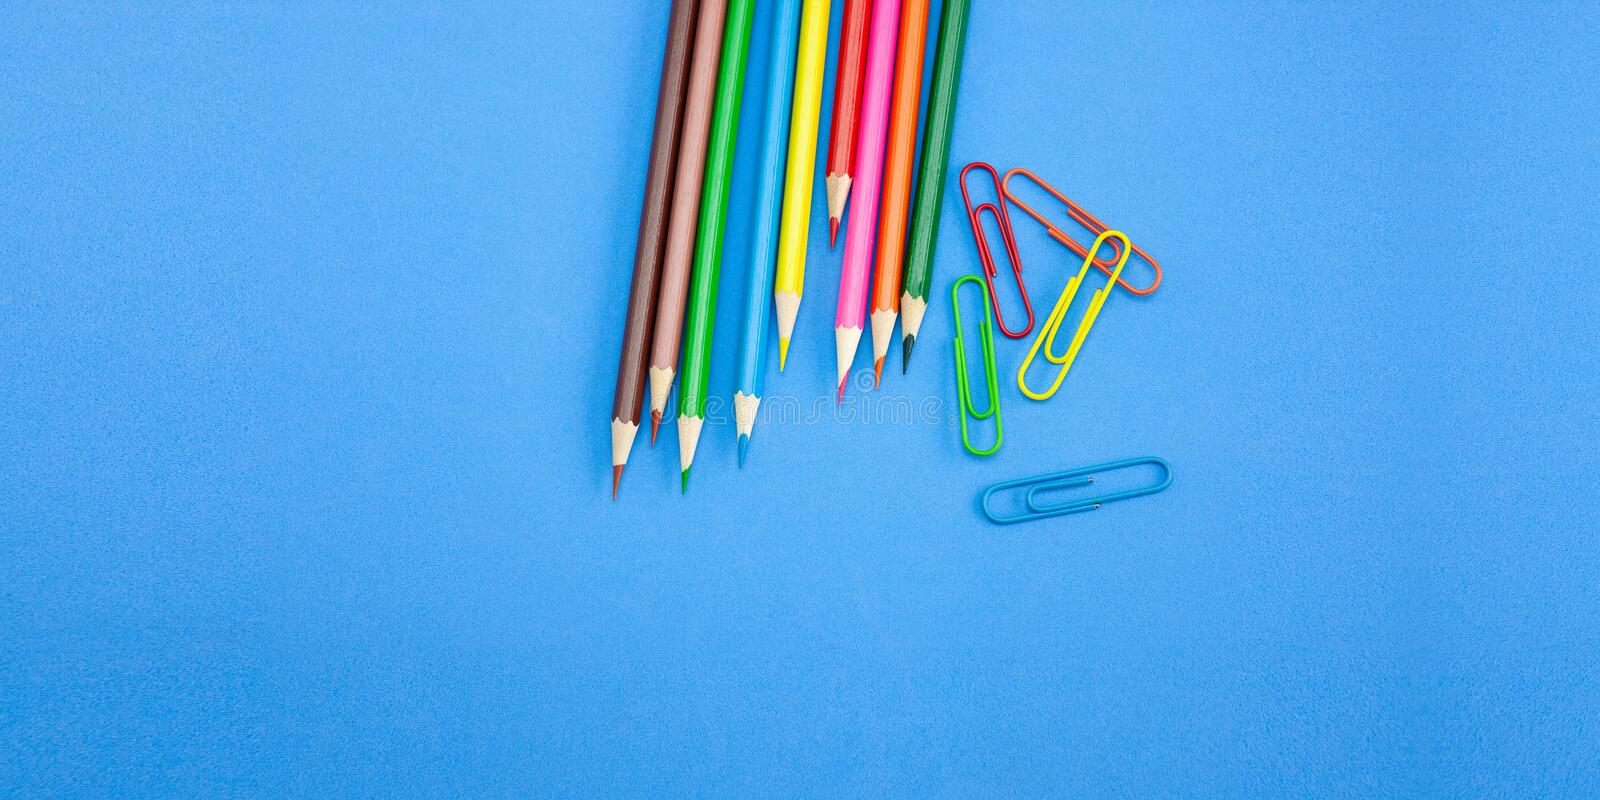 Art and drawing concepts, Colored crayon pencils and clips on blue background. Art and drawing concepts, Colored crayon pencils and clips at top corner on blue stock photos